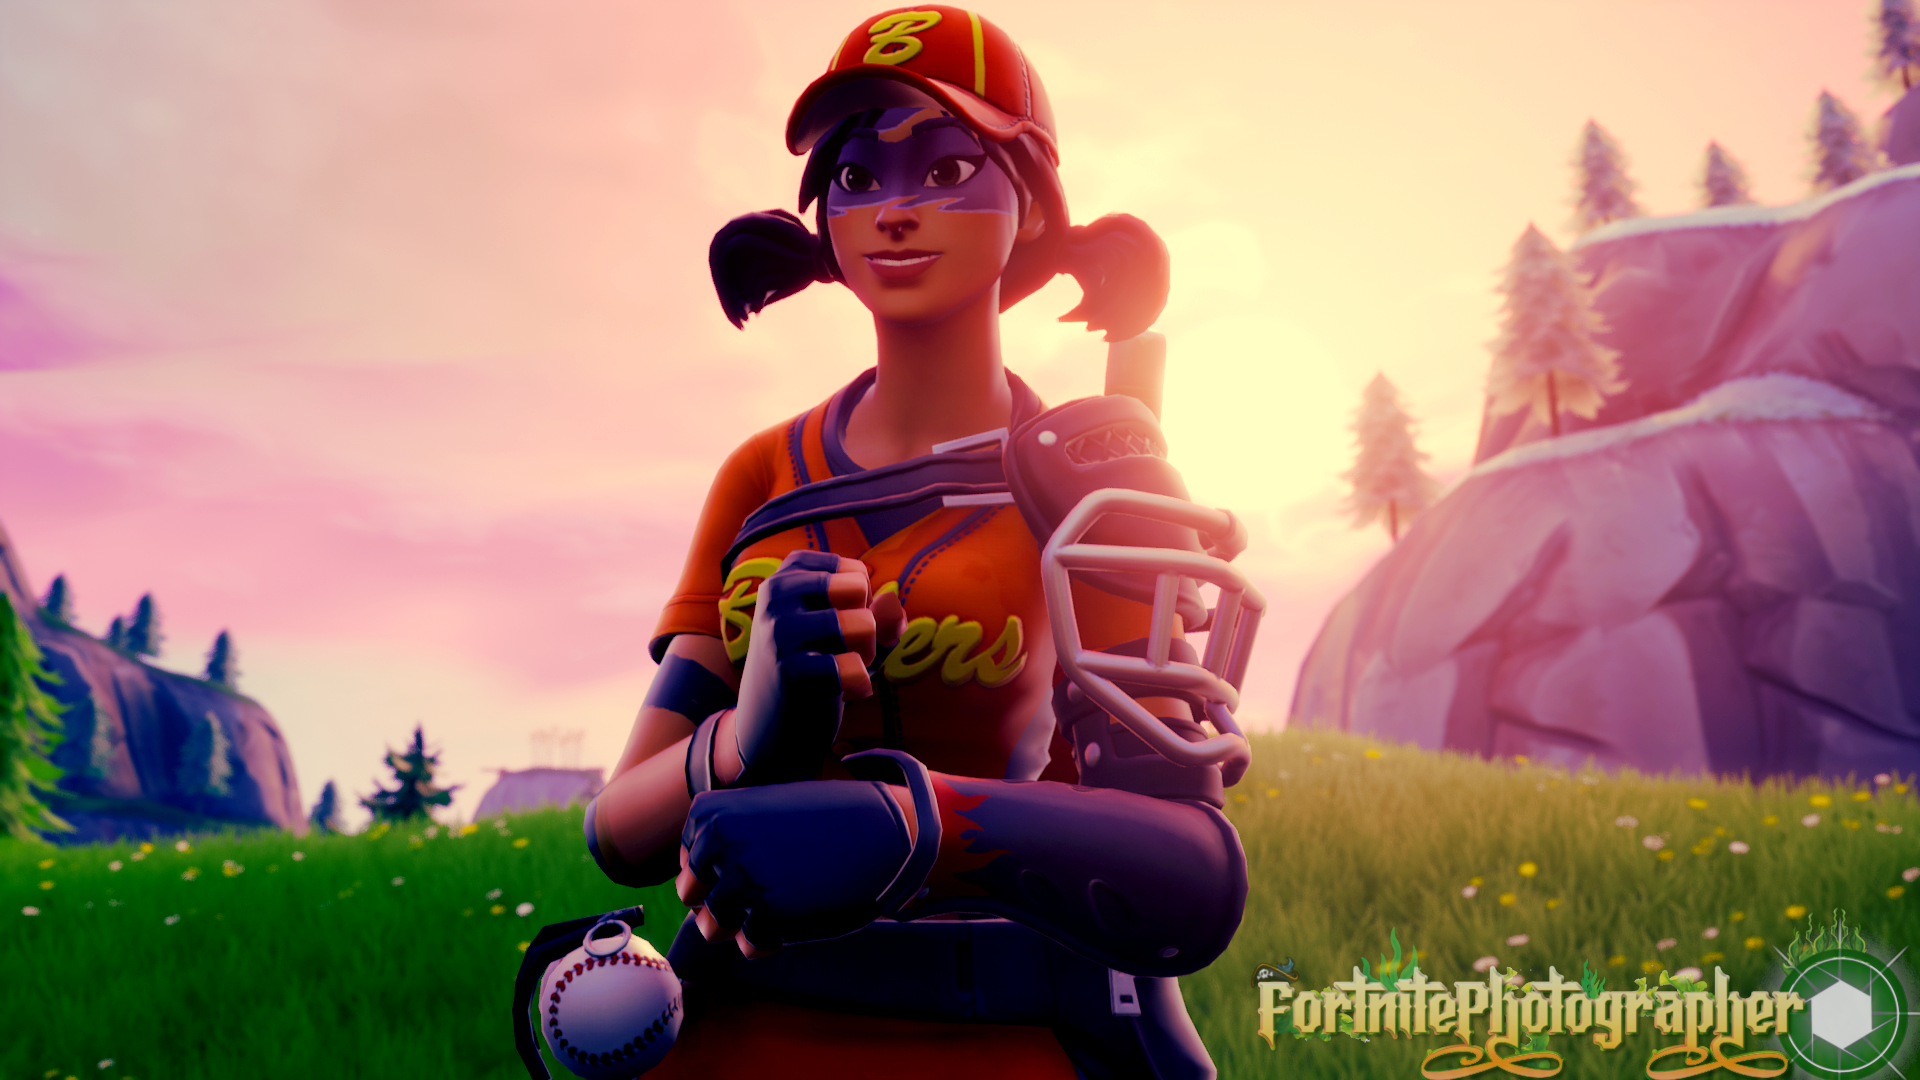 The Games Begin This Outfit Is 10 10 For Me Hope You Guys Enjoy The Shots Fastball Set 01 2 4 Fnphootographer On Twitter Fortnite Ball Photographer